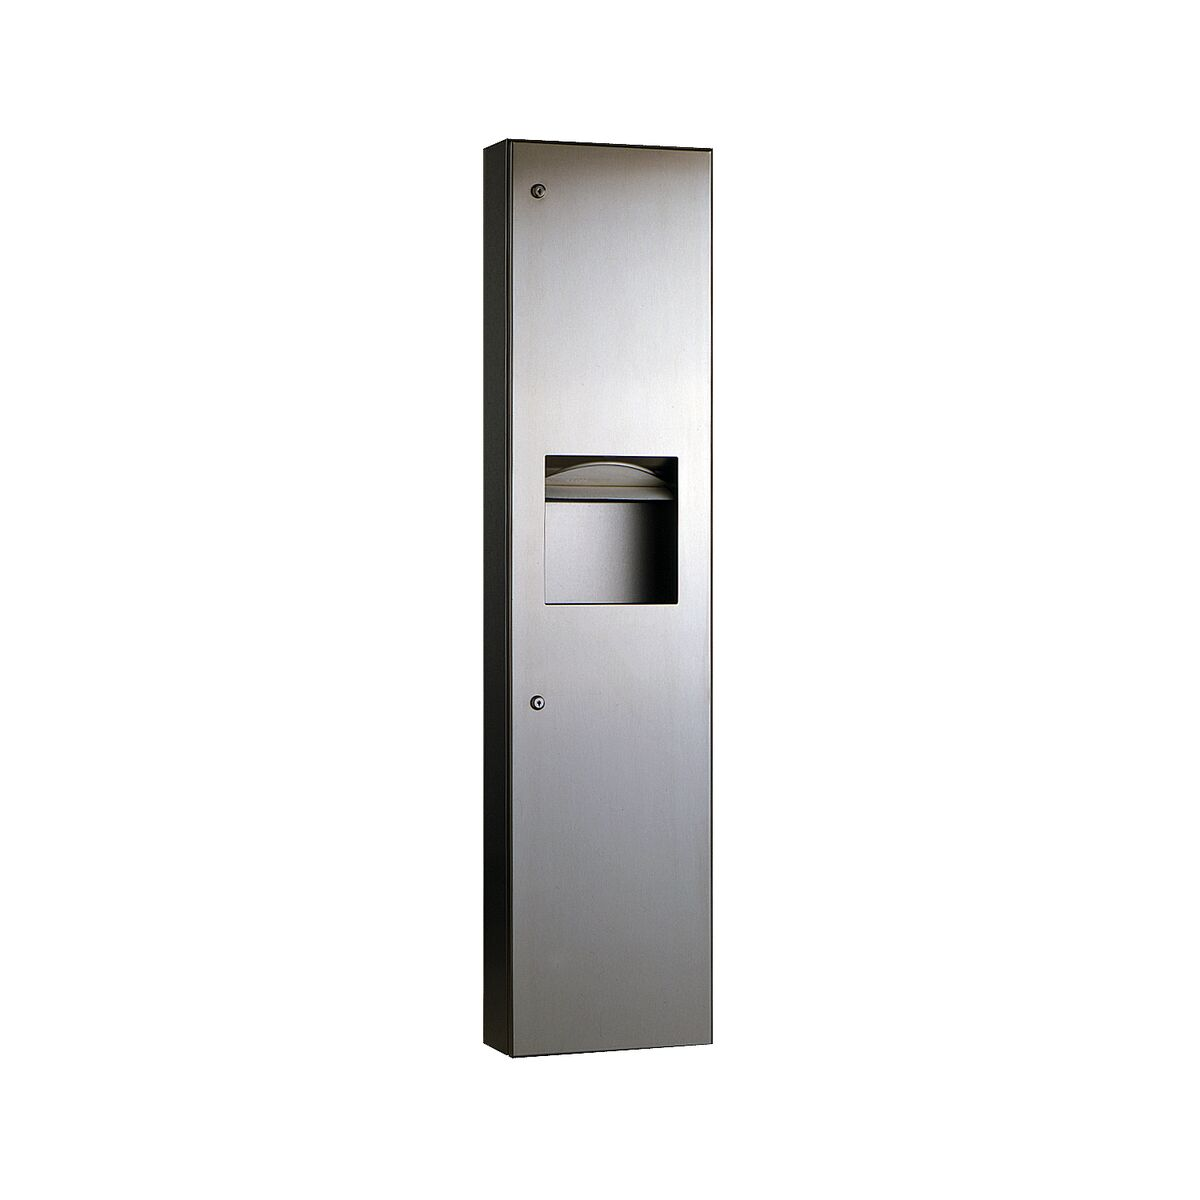 Bobrick Surface Mounted Paper Towel Dispenser Waste